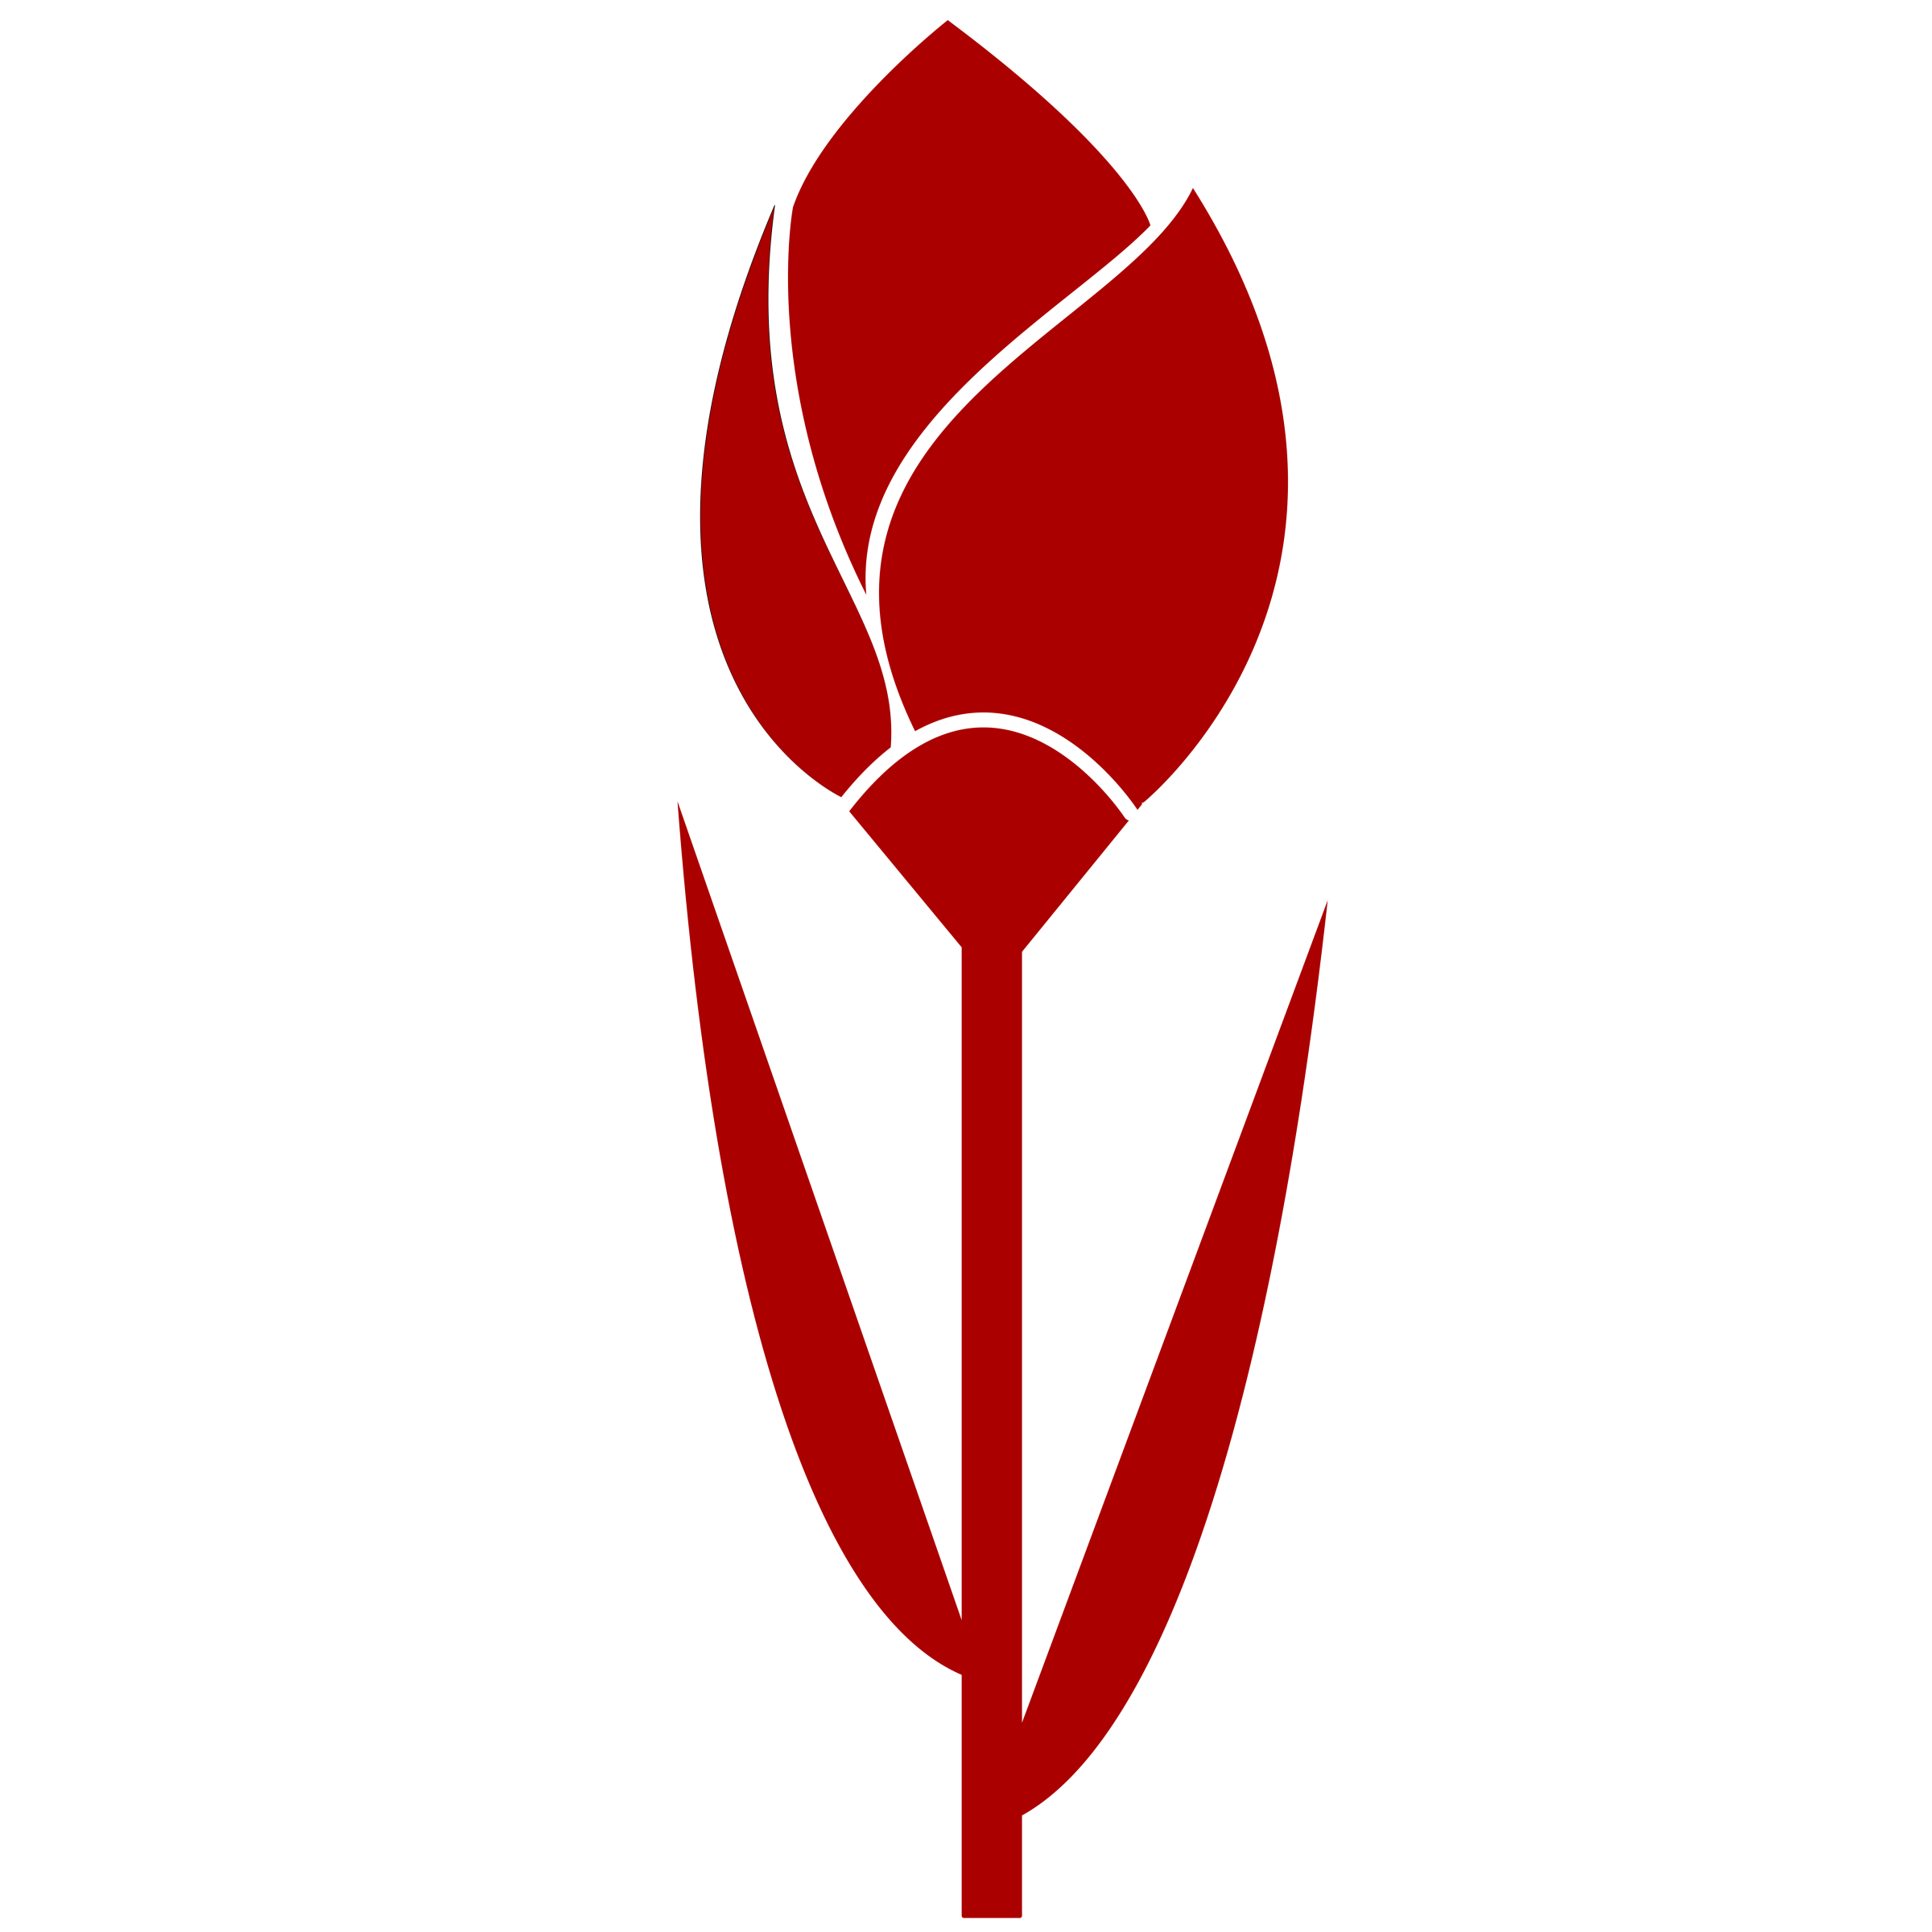 TULIP Simple Red Flower- remixed, one color. by oldifluff